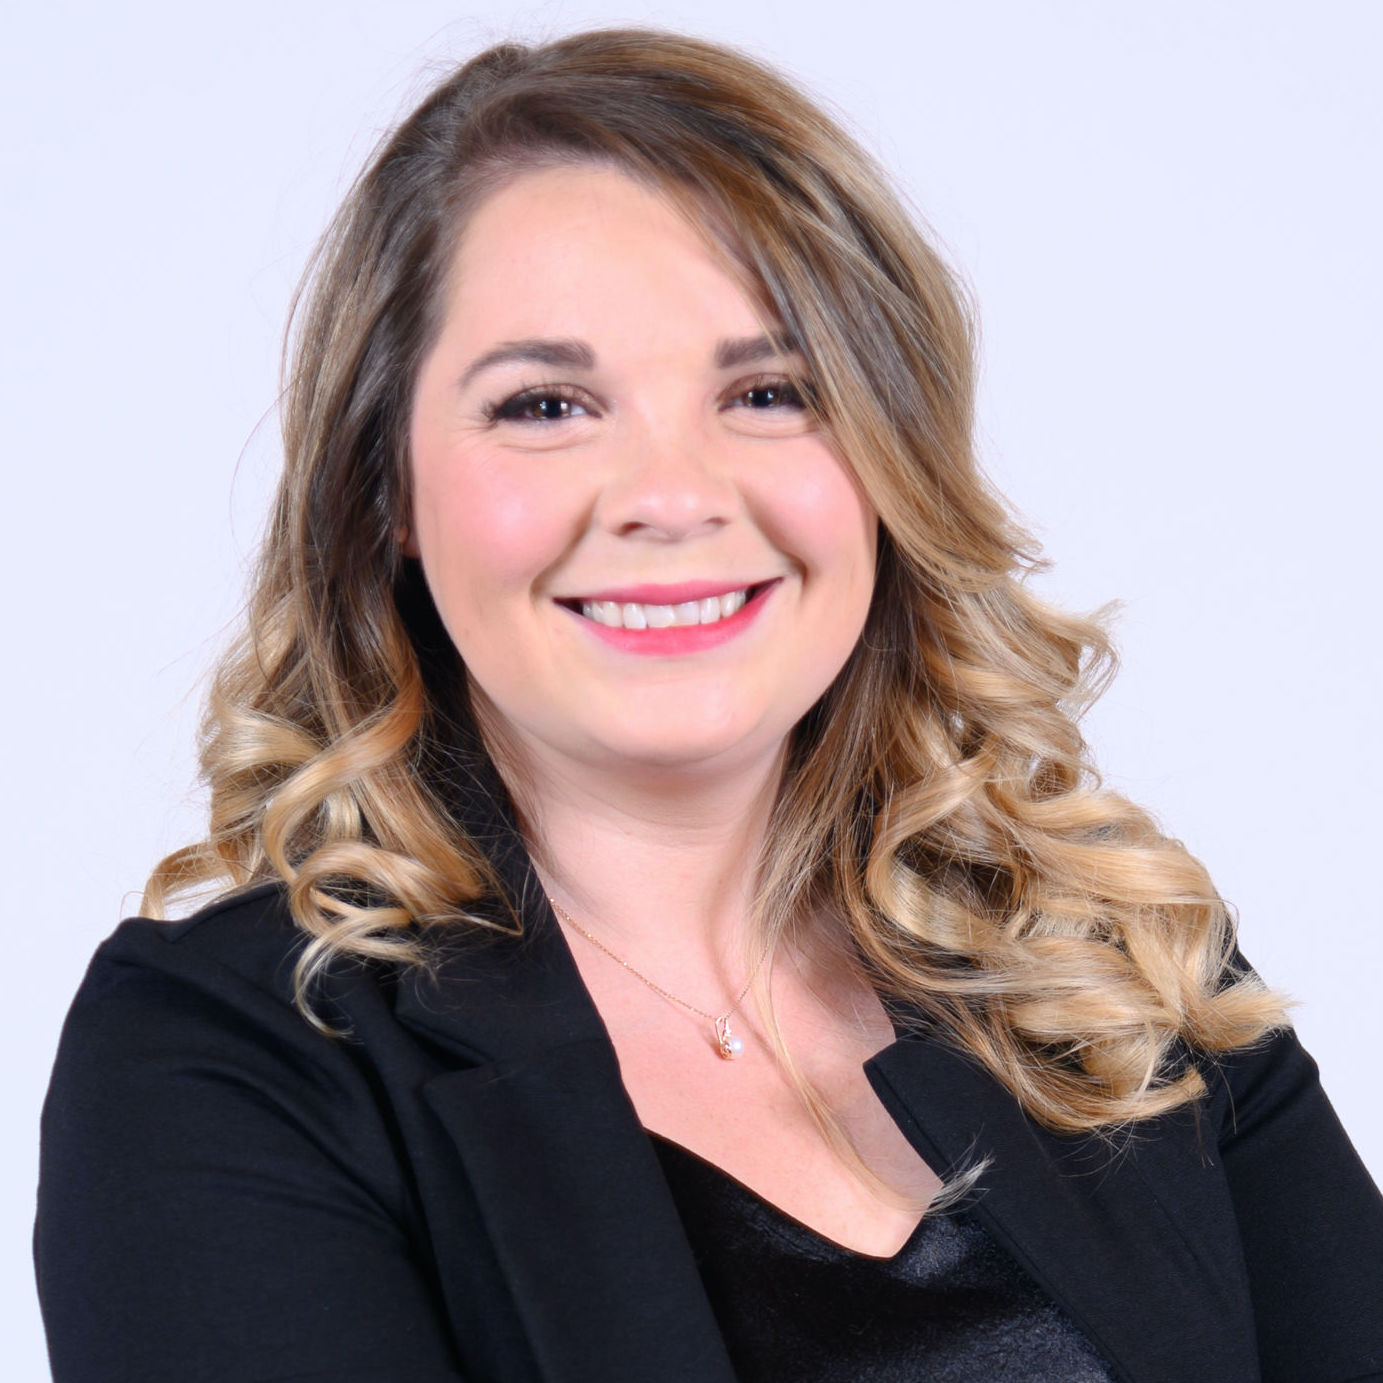 Realtor® Oakland University graduate with 8 years of customer service experience.